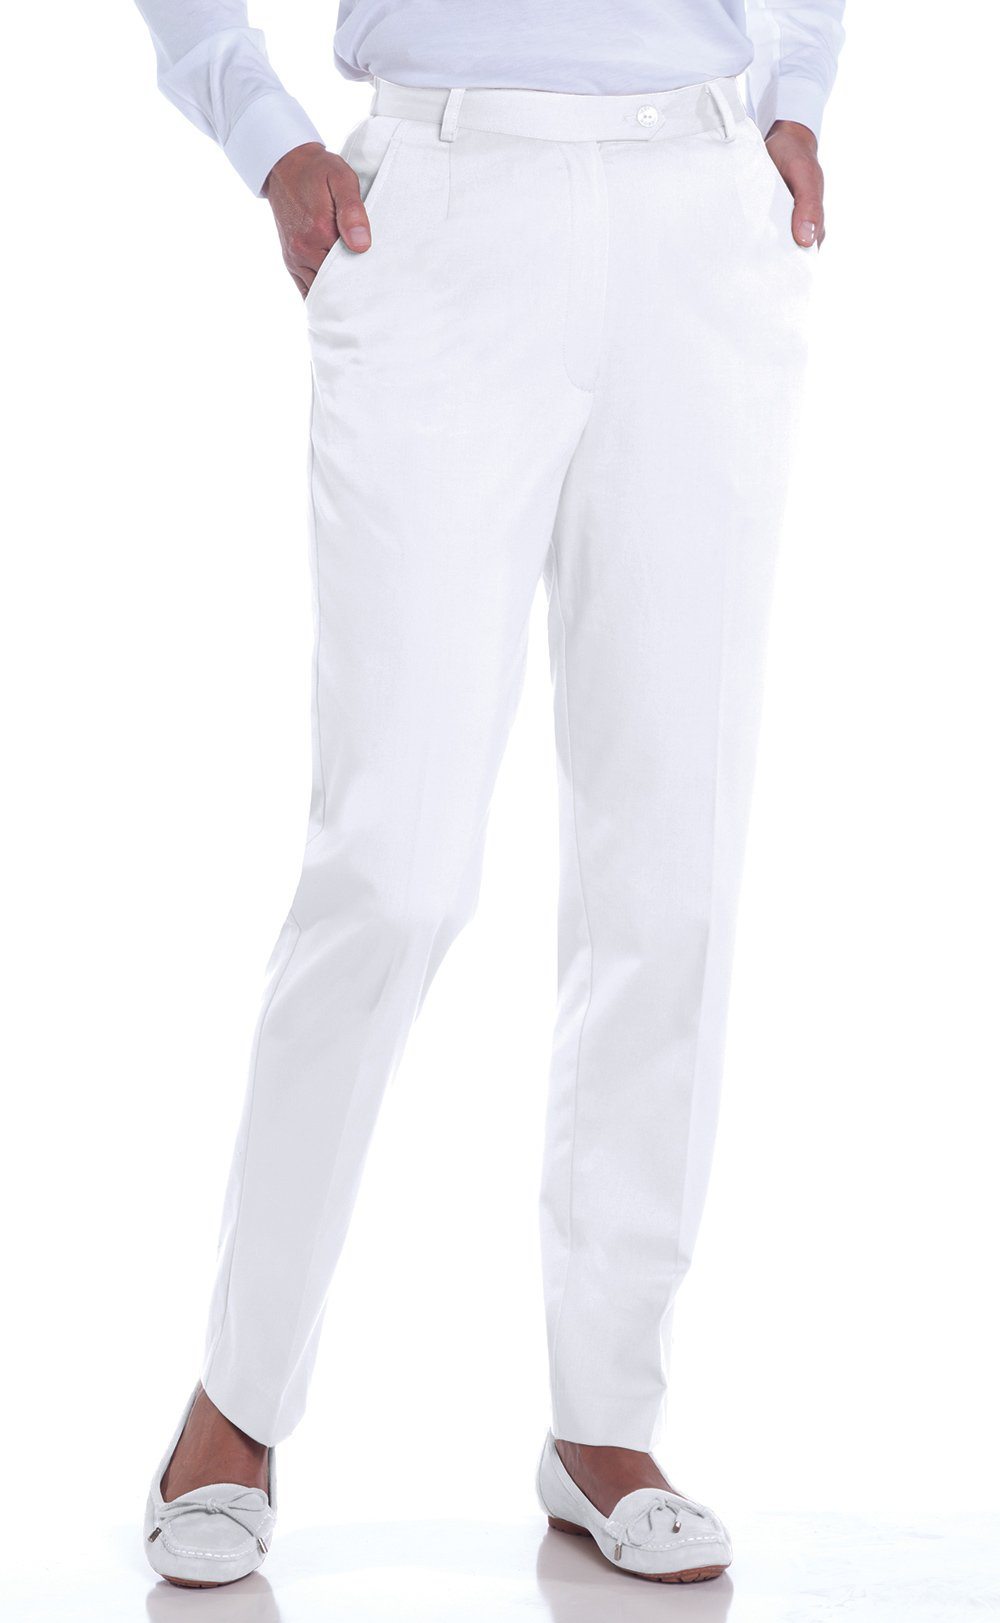 Stretch Twill Flat Front Pants</br>White 000